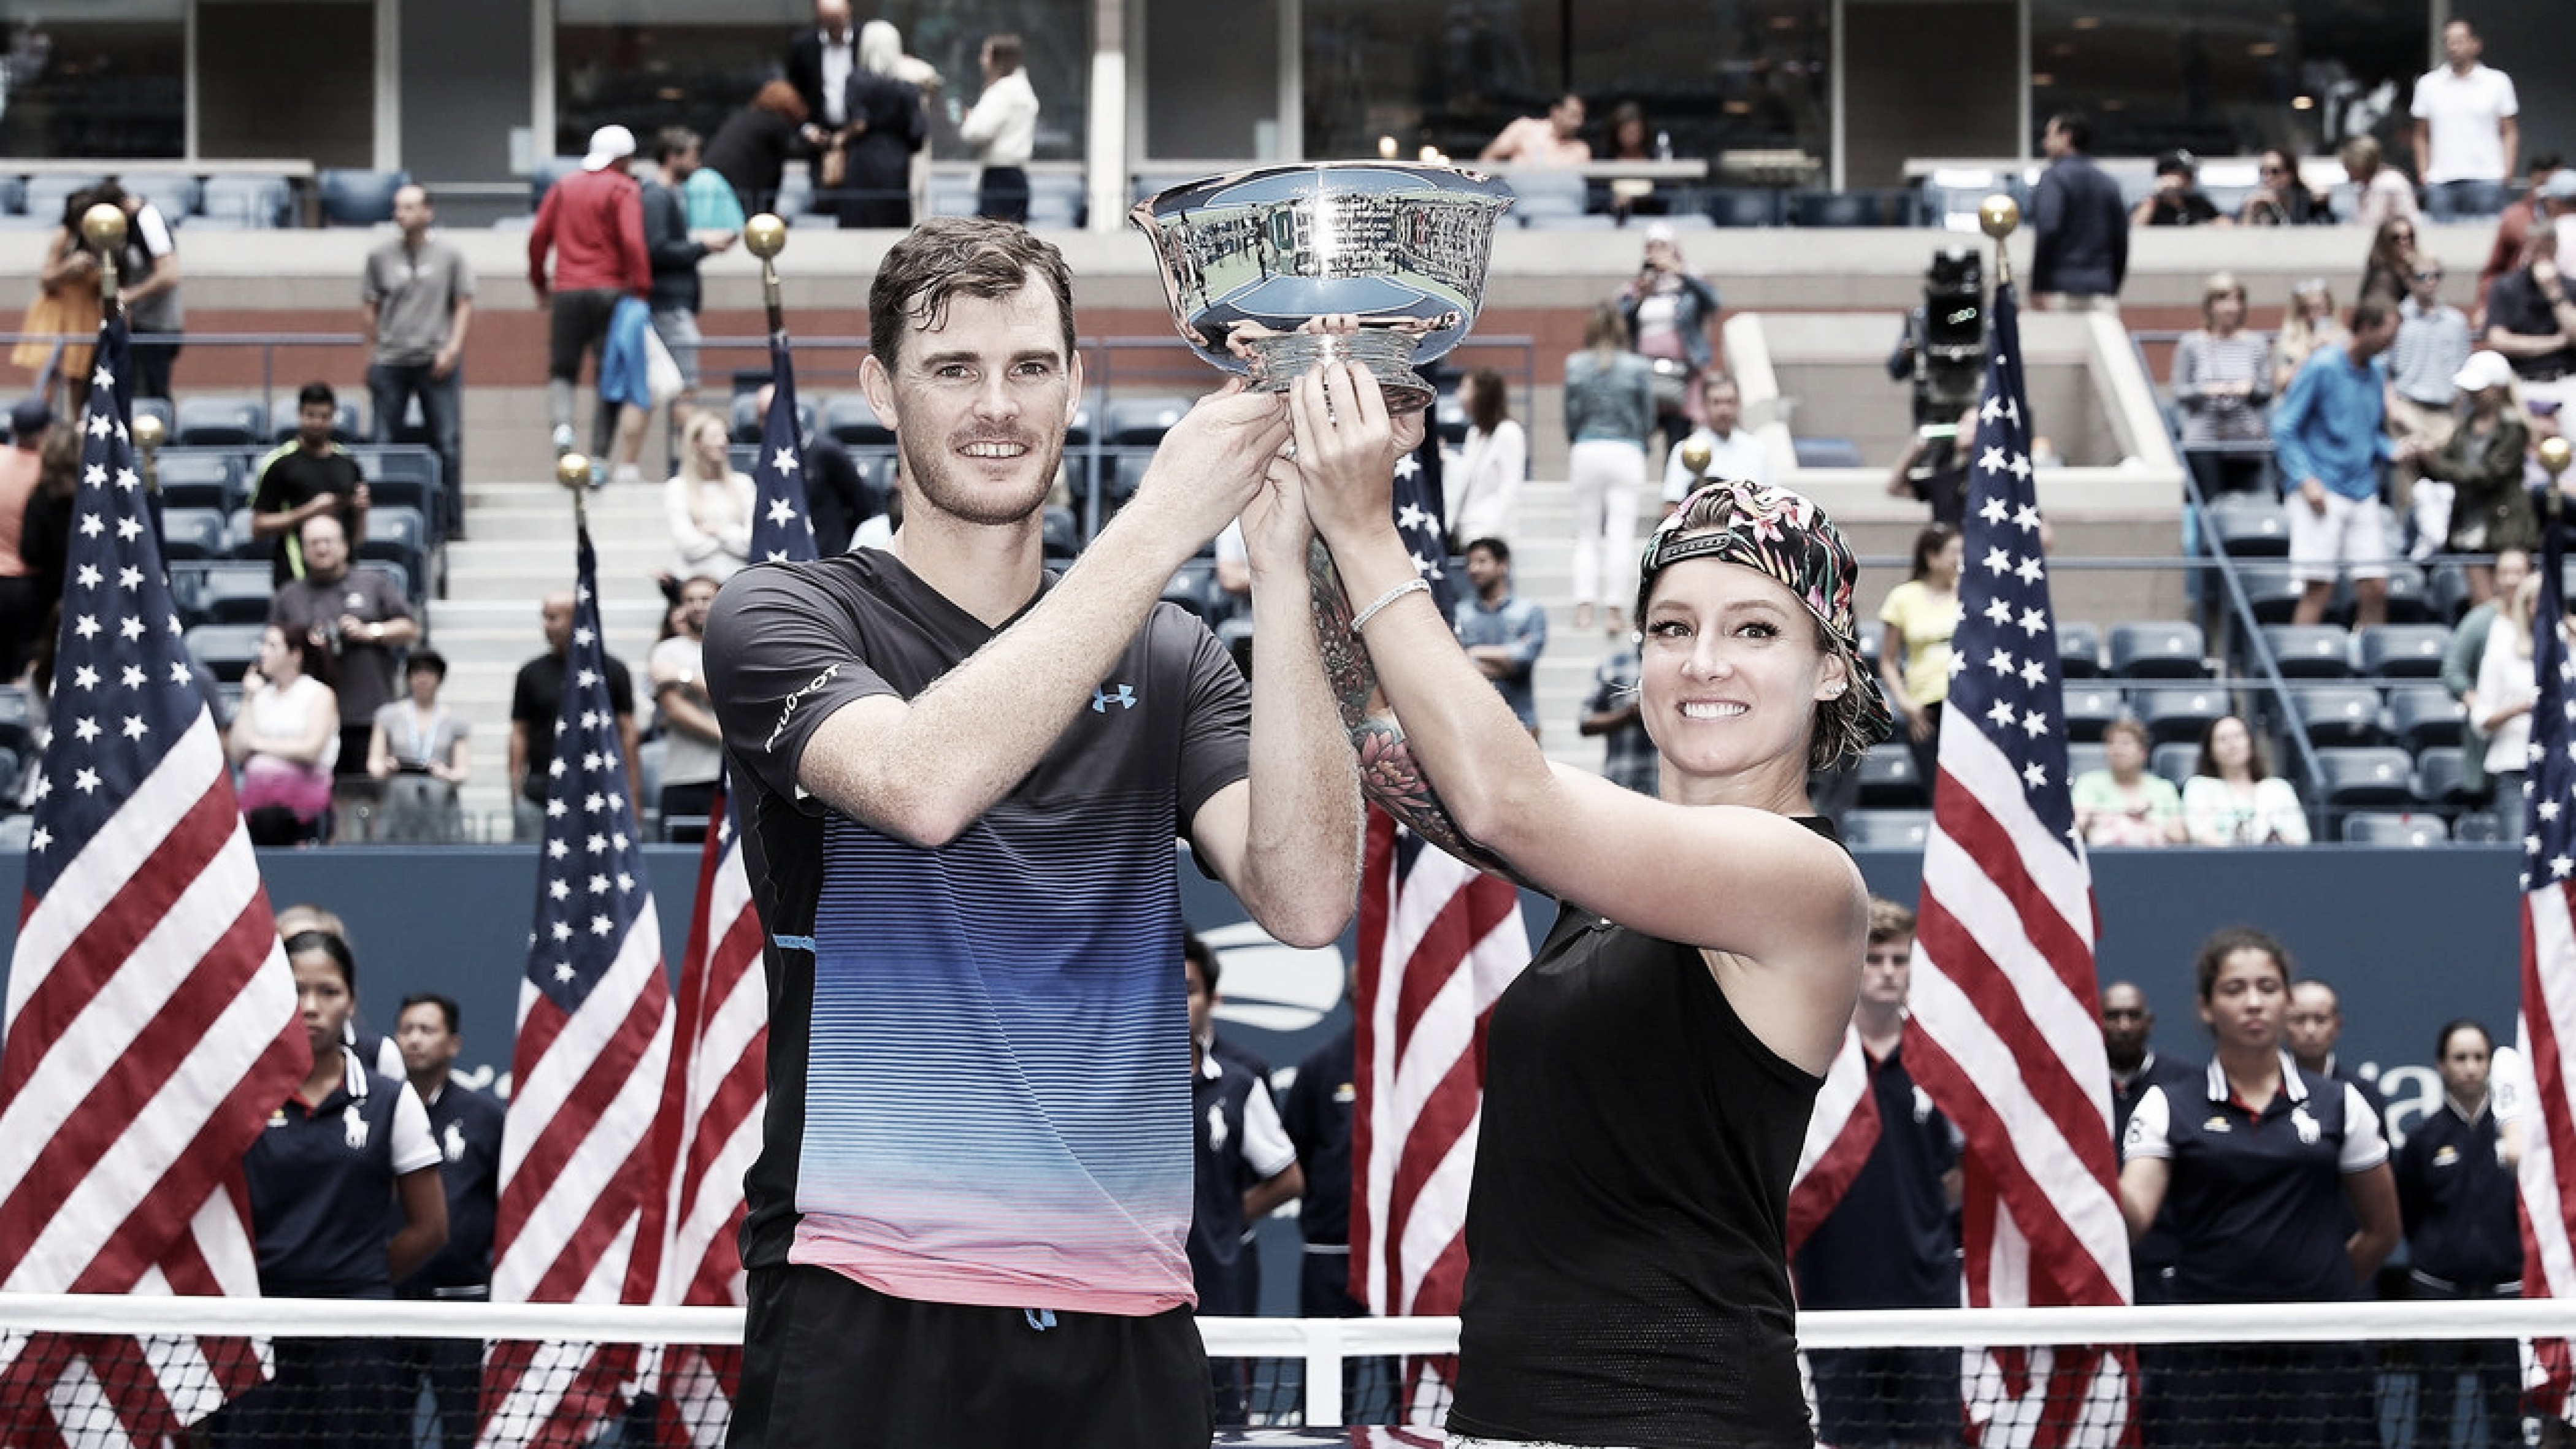 Mattek-Sands e Jamie Murray conquistam título de duplas mistas do US Open